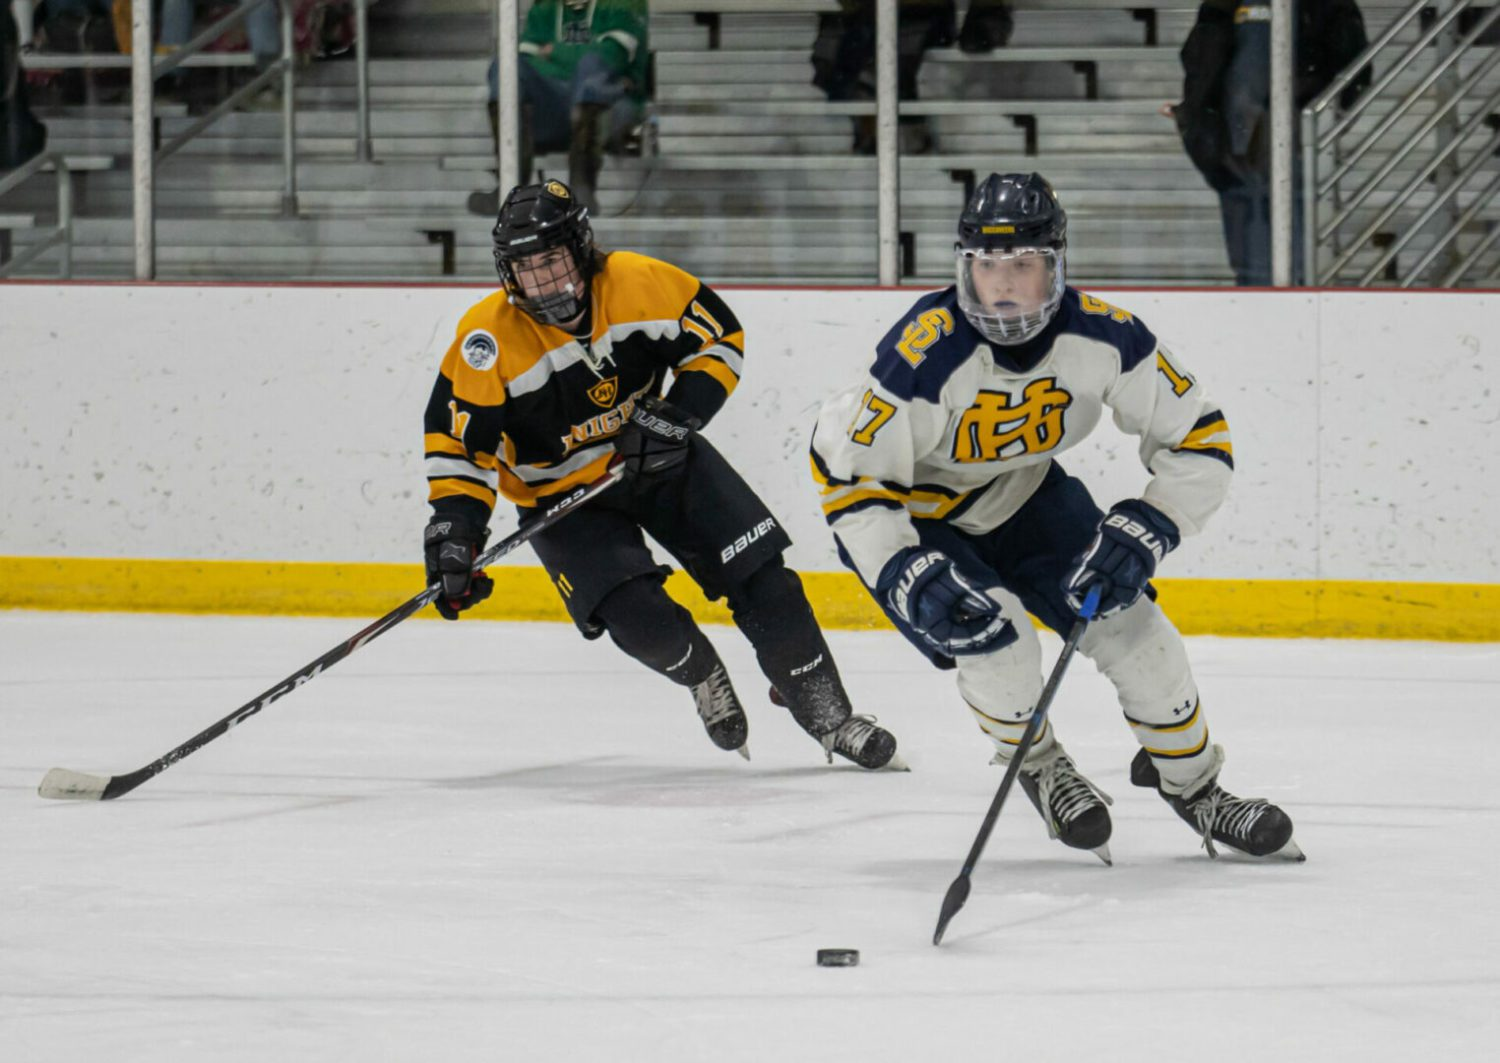 Grand Haven hockey team falls just short in bid to win conference championship